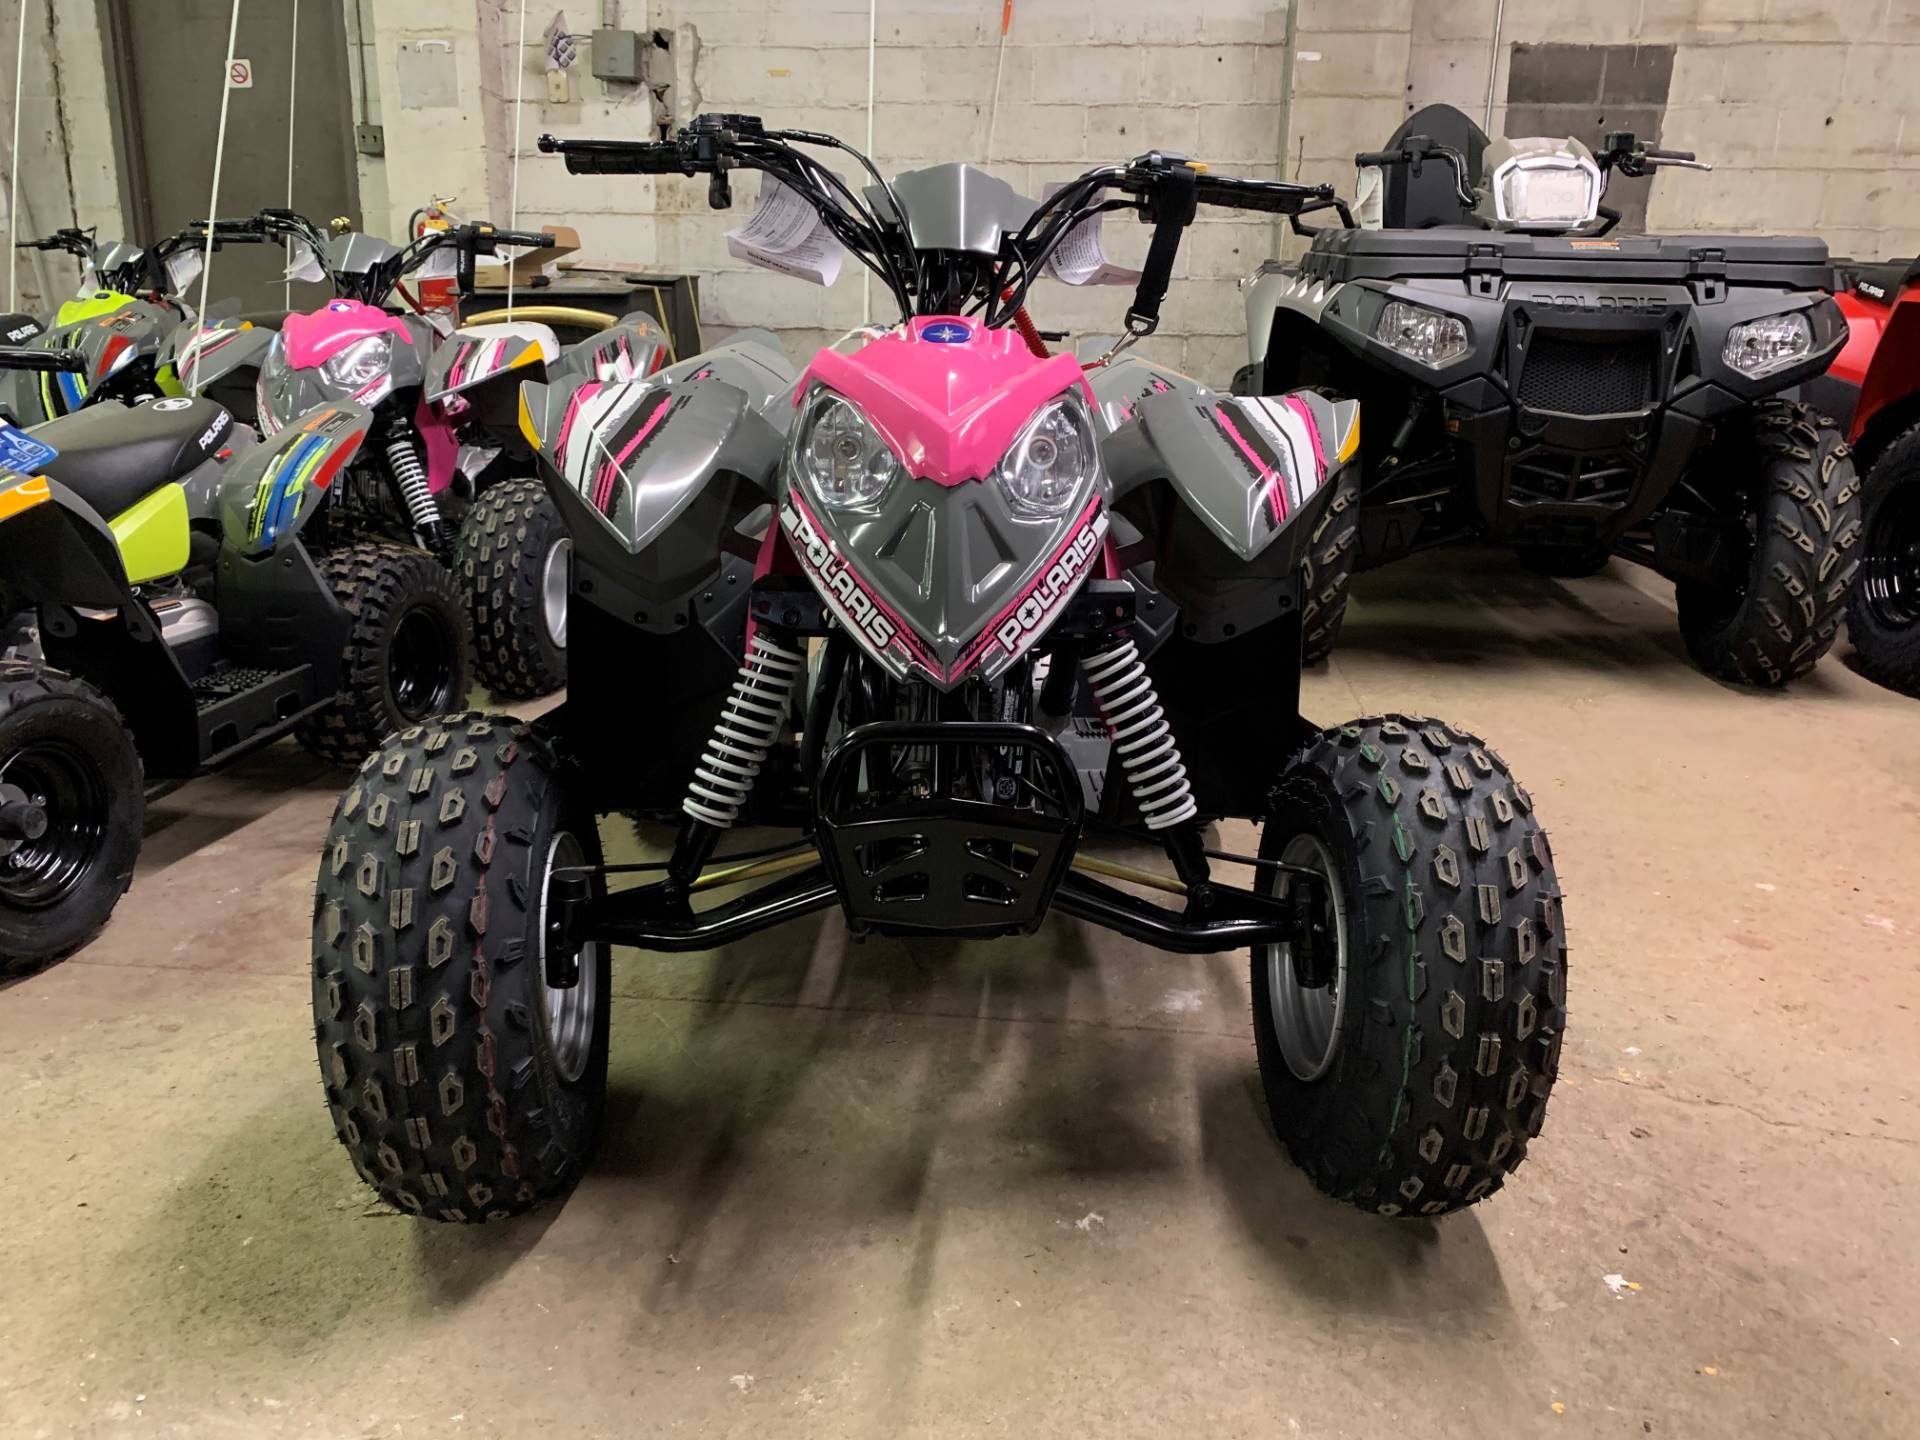 2020 Polaris Outlaw 110 in Chicora, Pennsylvania - Photo 8